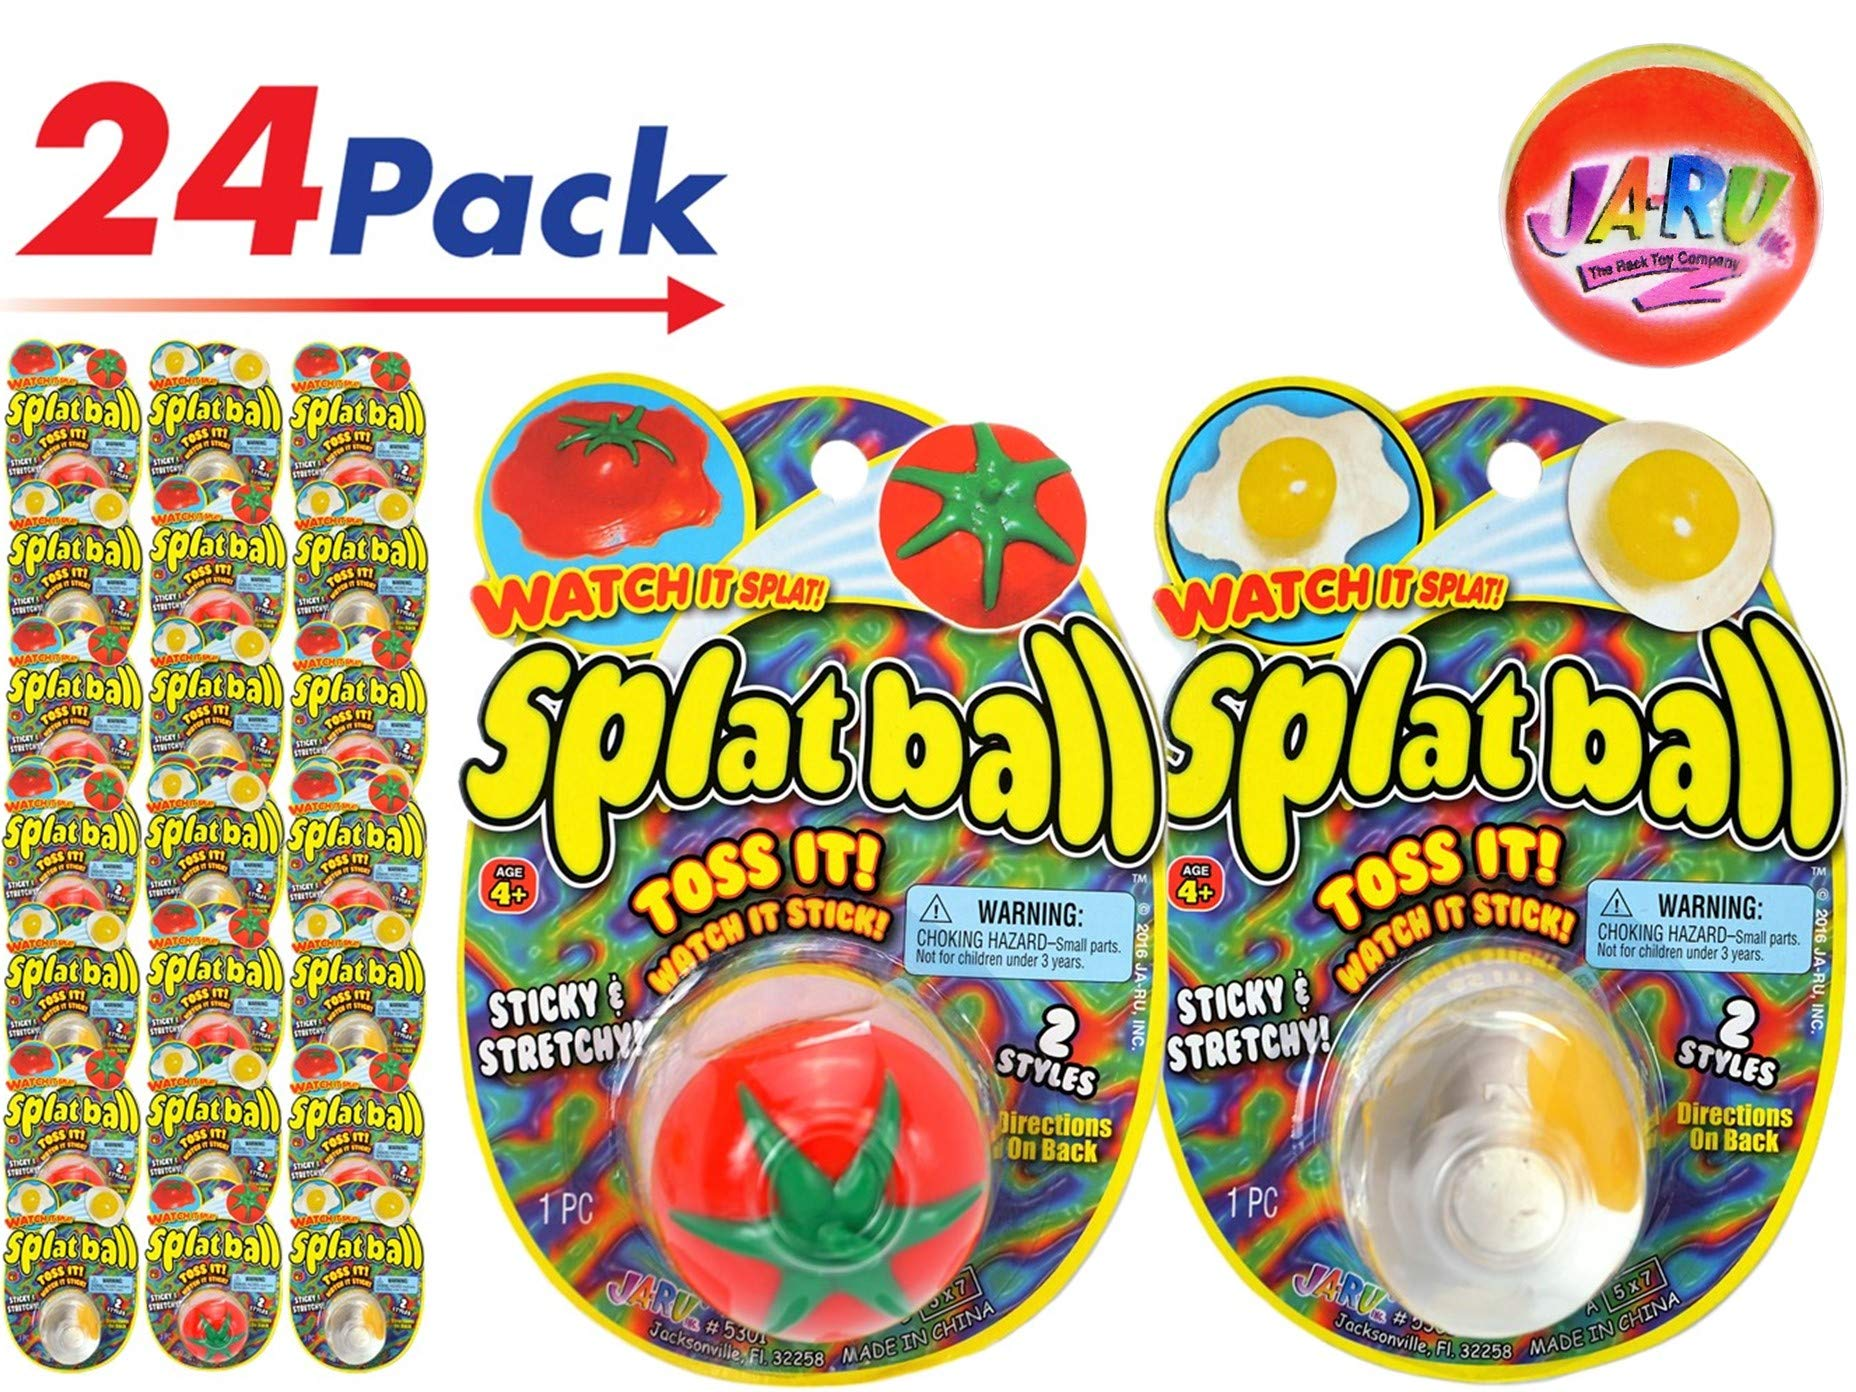 JA-RU Splat Ball Sticky & Stretchy (Pack of 24) Egg & Tomato. 5301-24